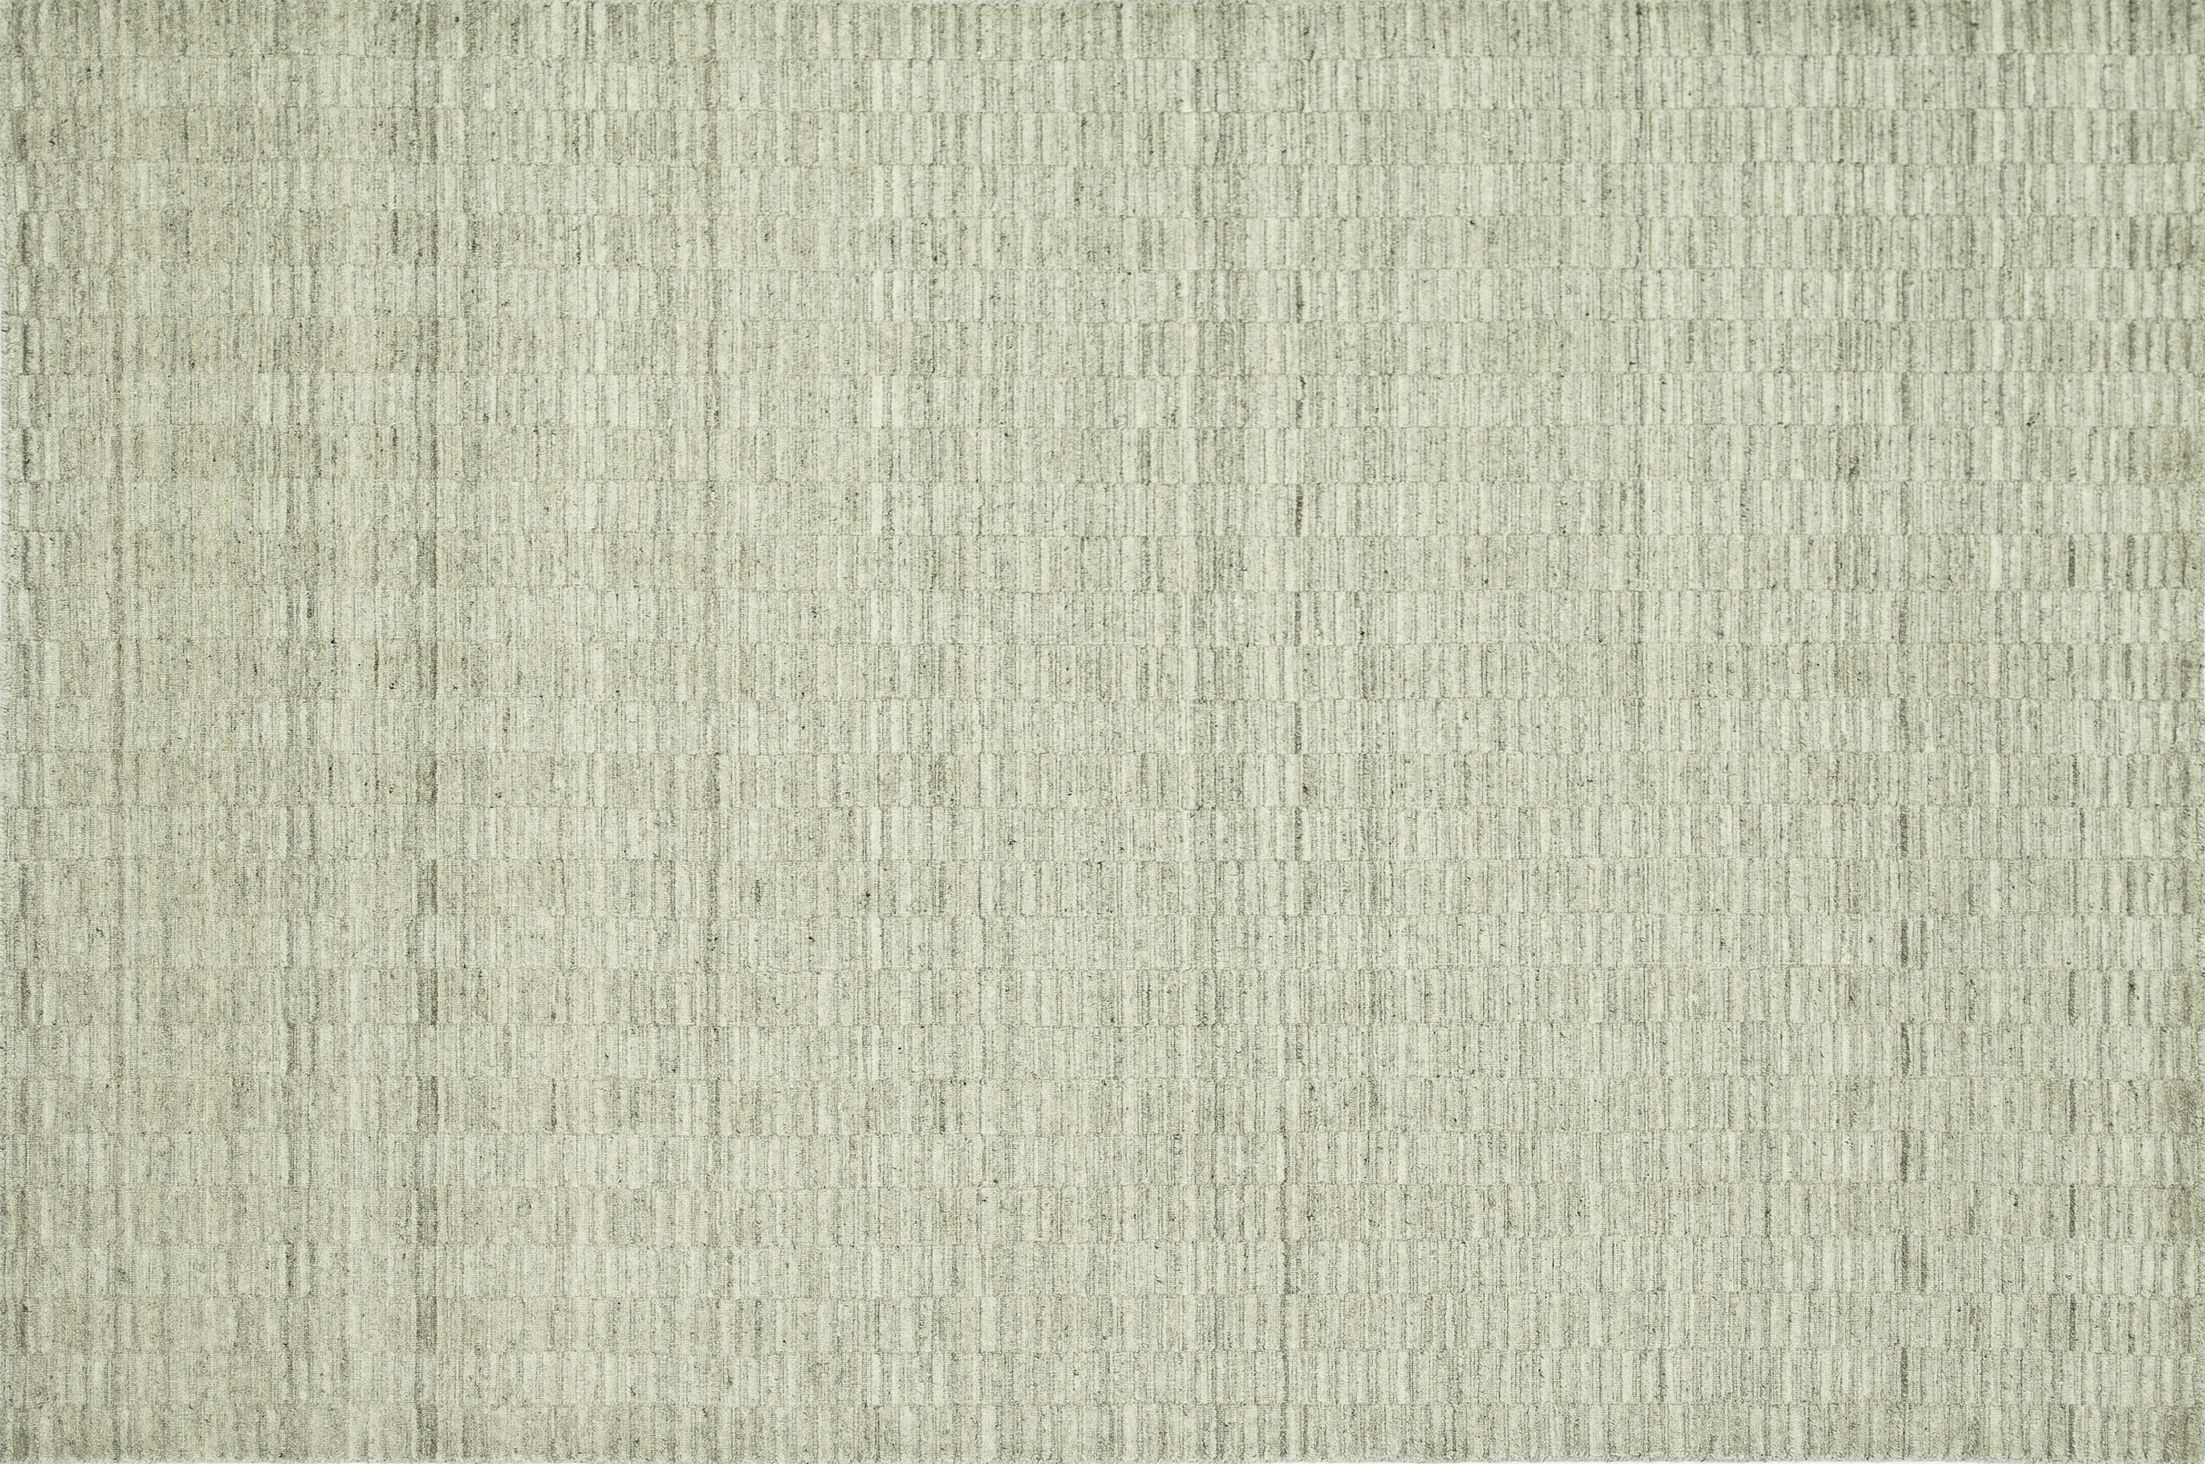 Nordgran Oatmeal White Solid Area Rug Rug Size: Rectangle 9'3